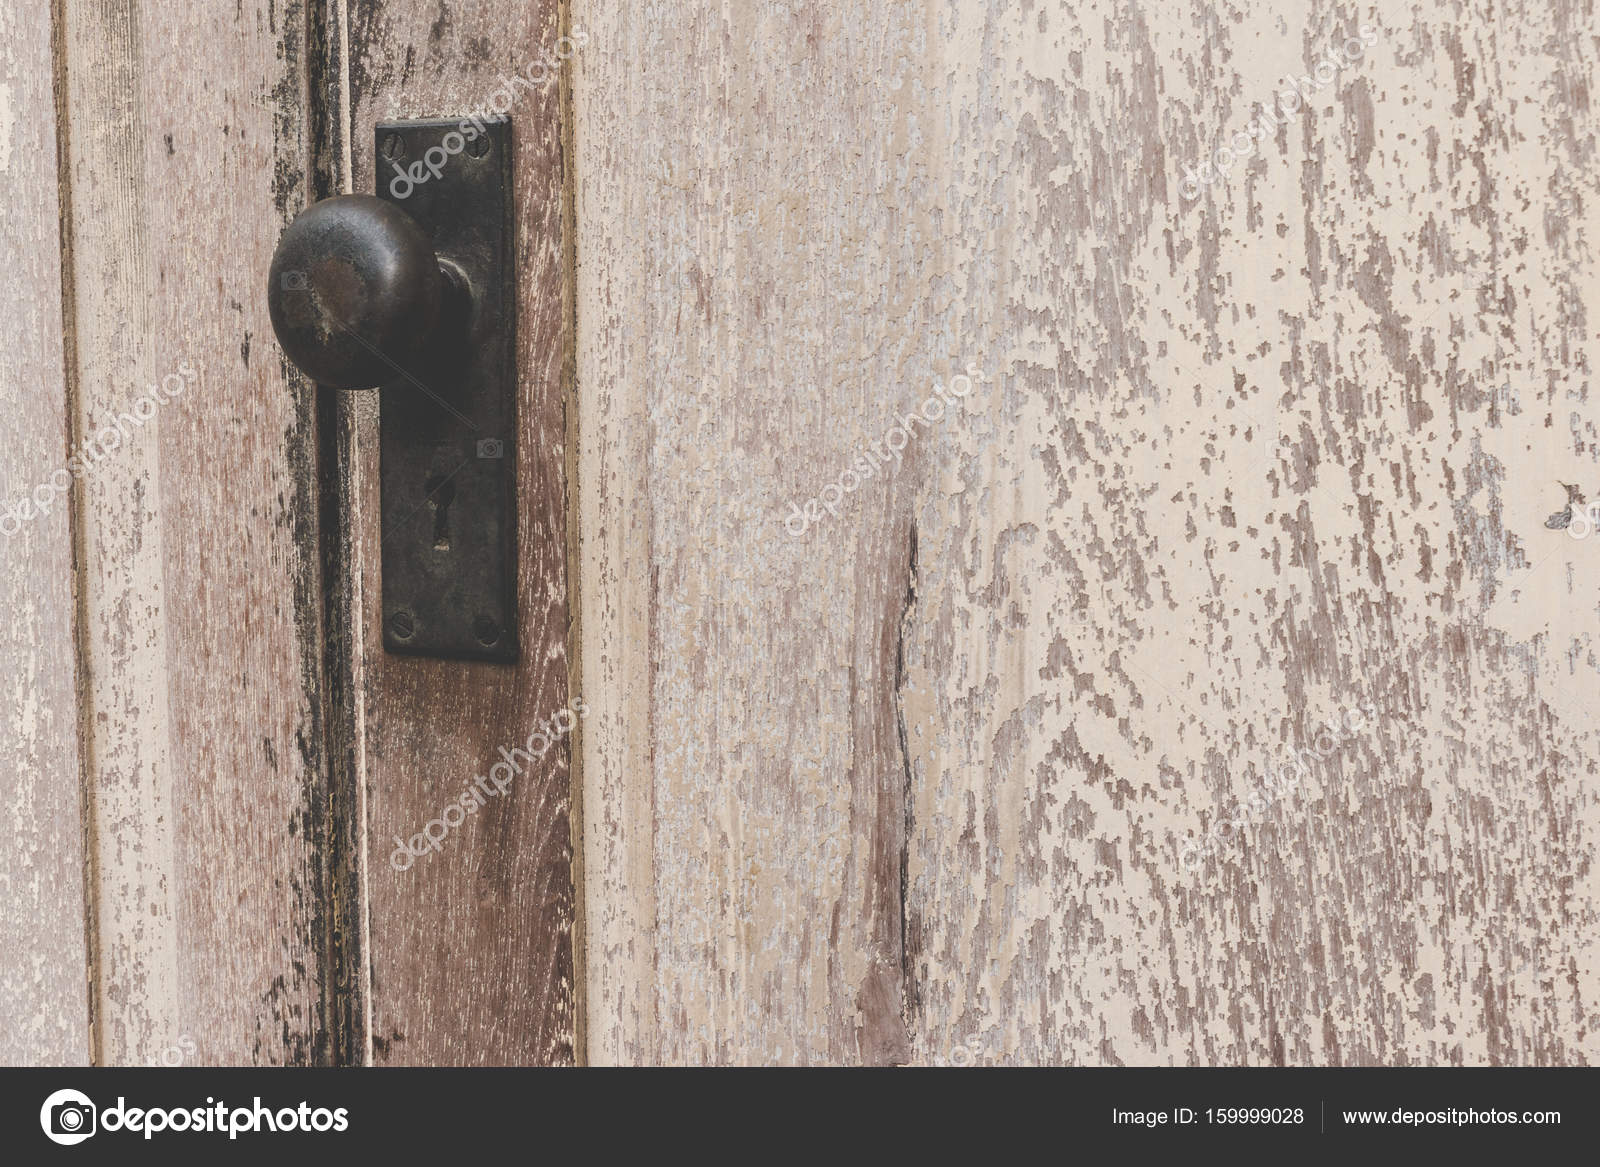 Rustic Vintage Door Knob On Antique Wood And Keyhole Made Of Brass The Old Wooden For Background Photo By Wittayayut